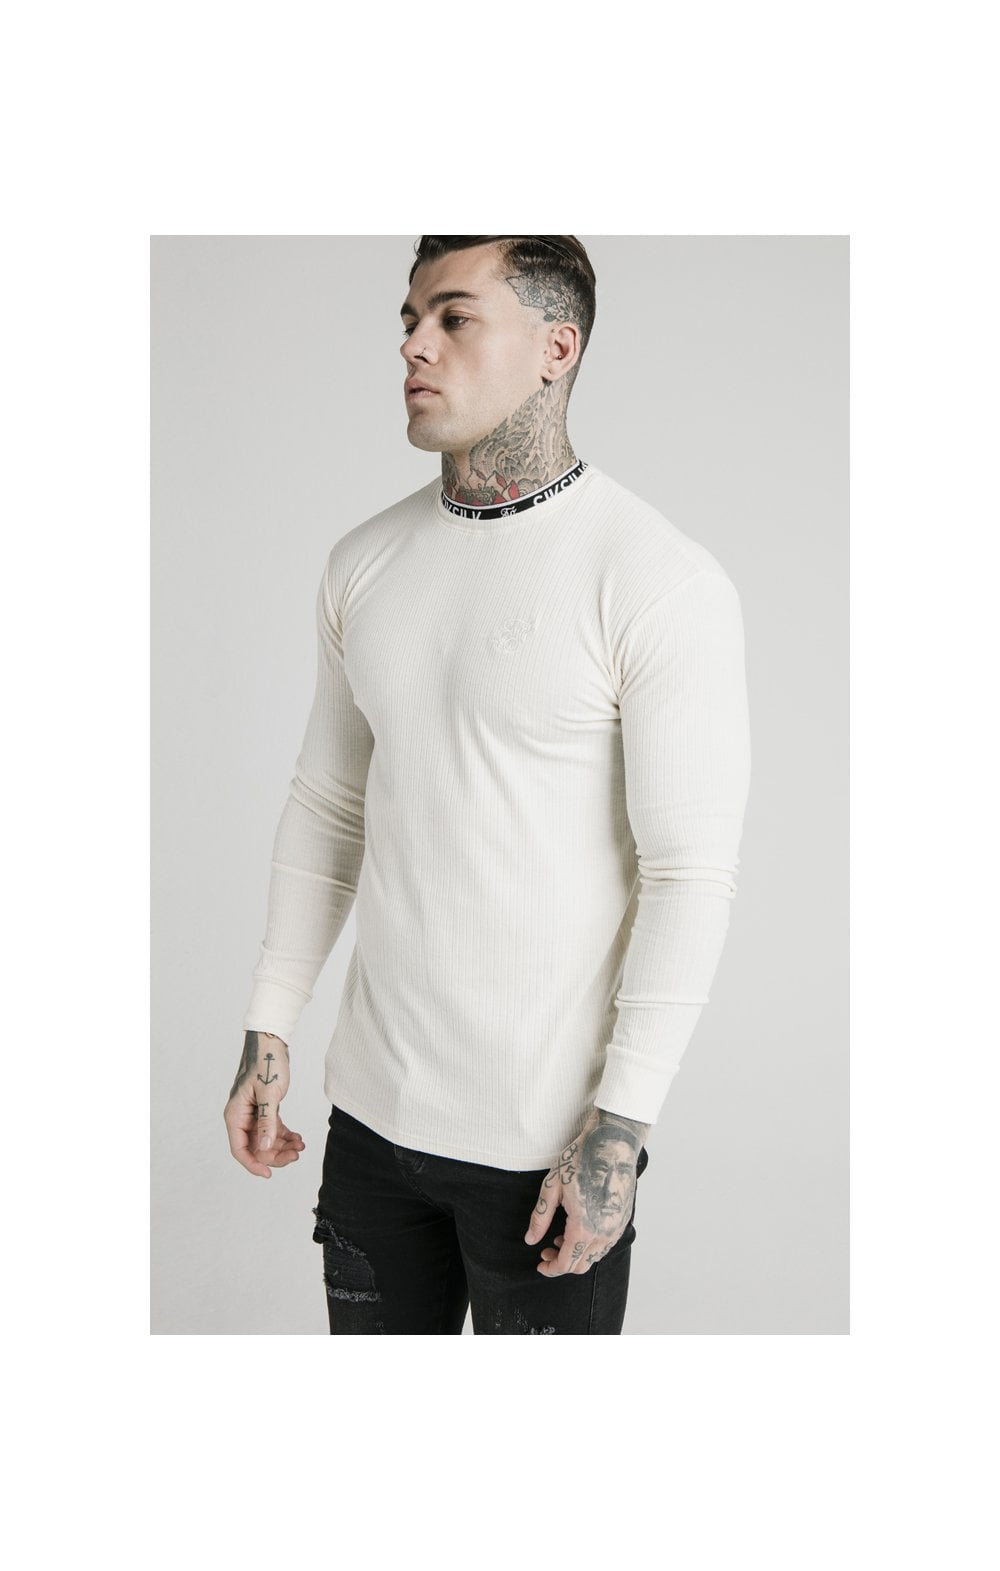 SikSilk L/S Rib Knit Tee - Off White